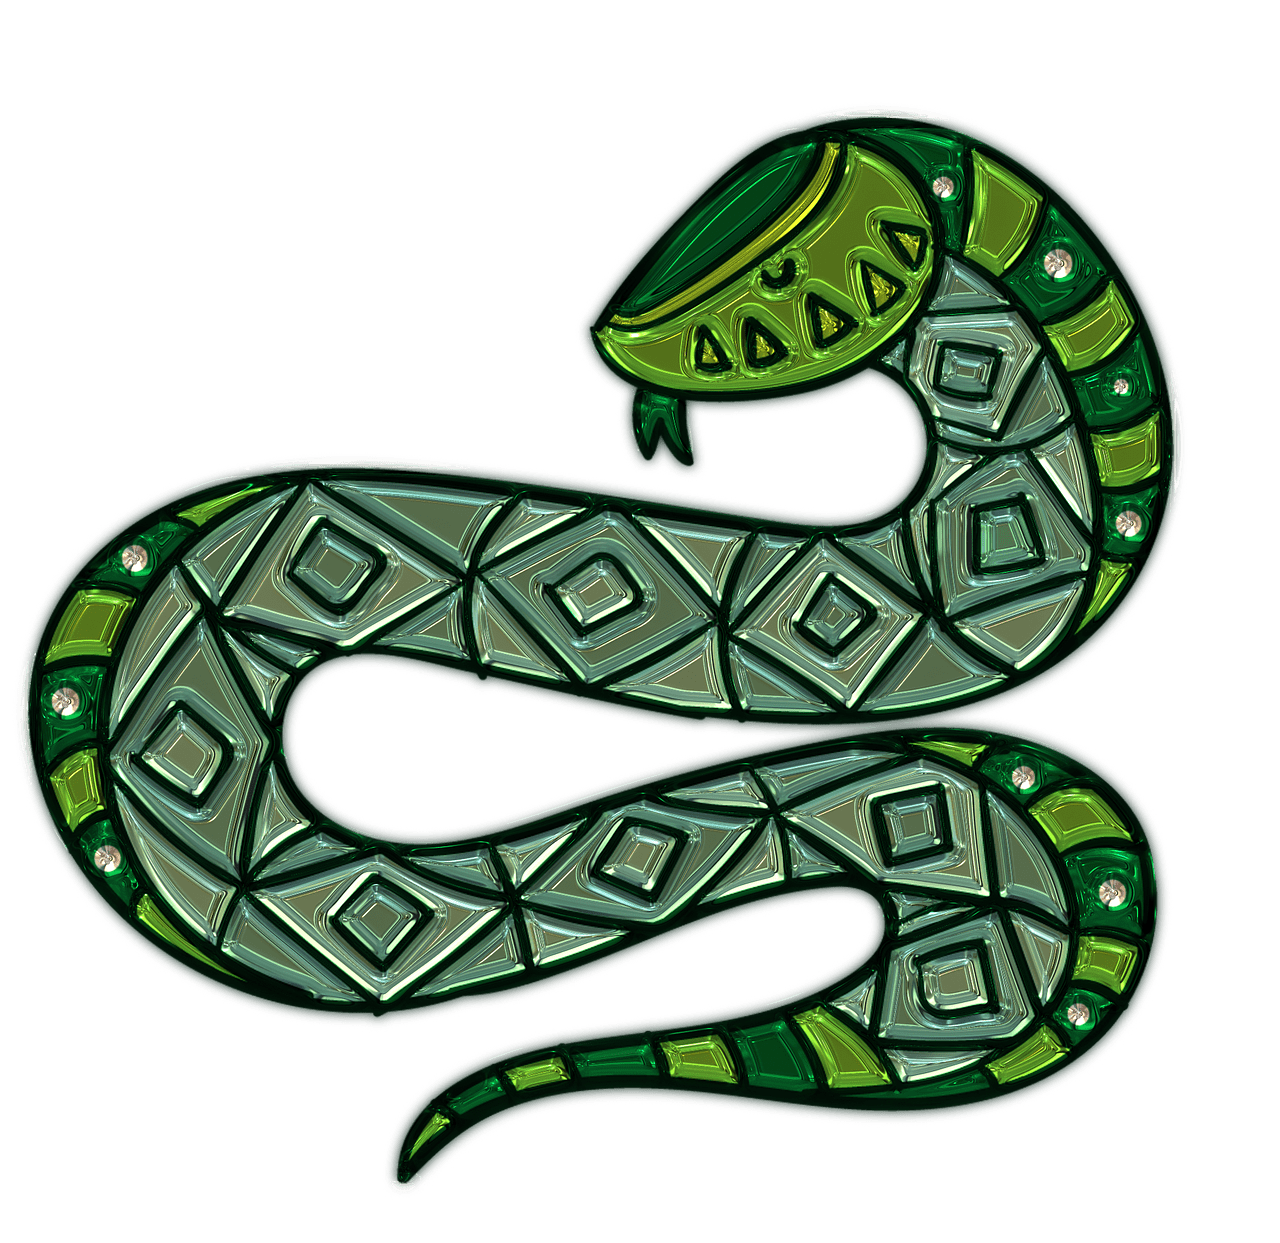 Snake clipart boa constrictor. Cobra transparent png stickpng